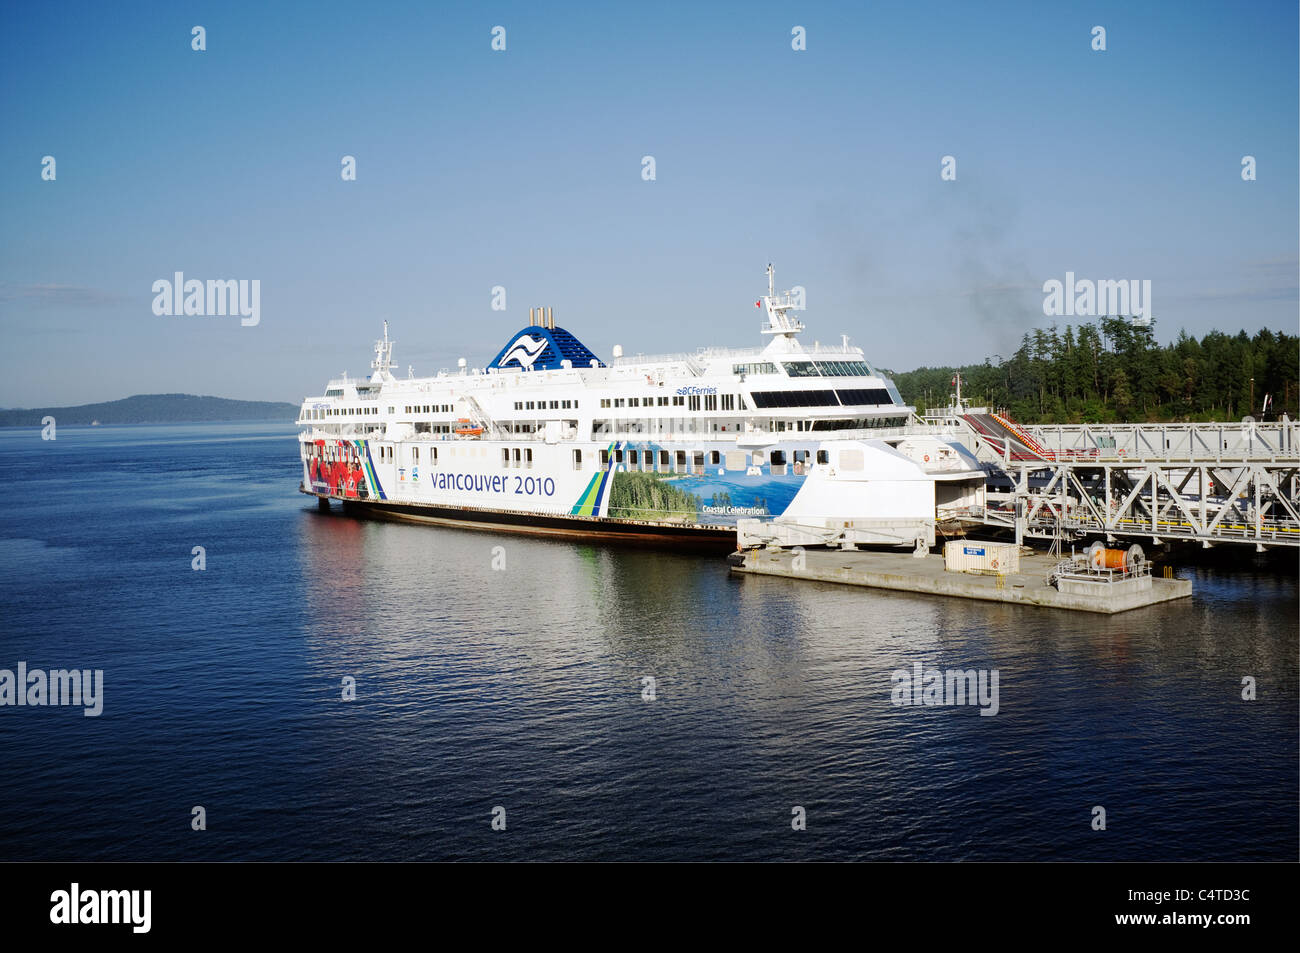 Ferry at Vancouver Island Dock in Olympics 2010 Livery - Stock Image